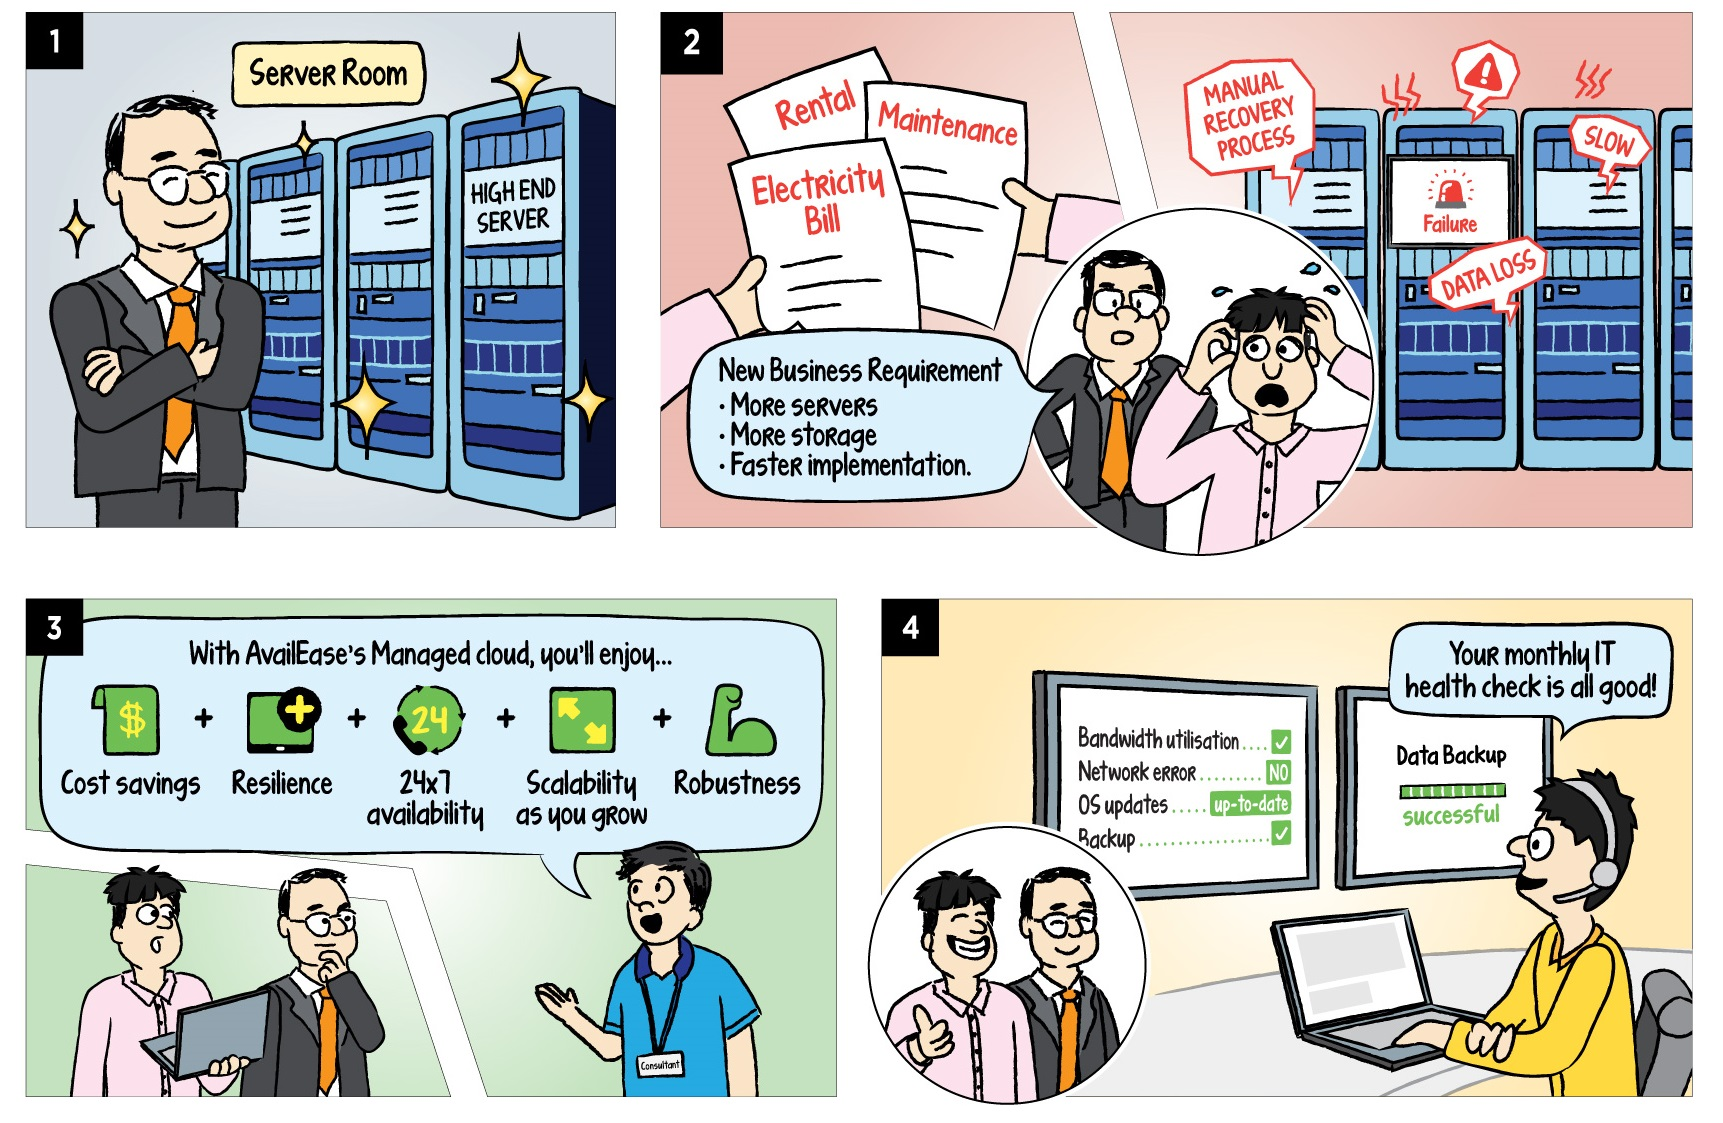 Comic Strip_Managed cloud